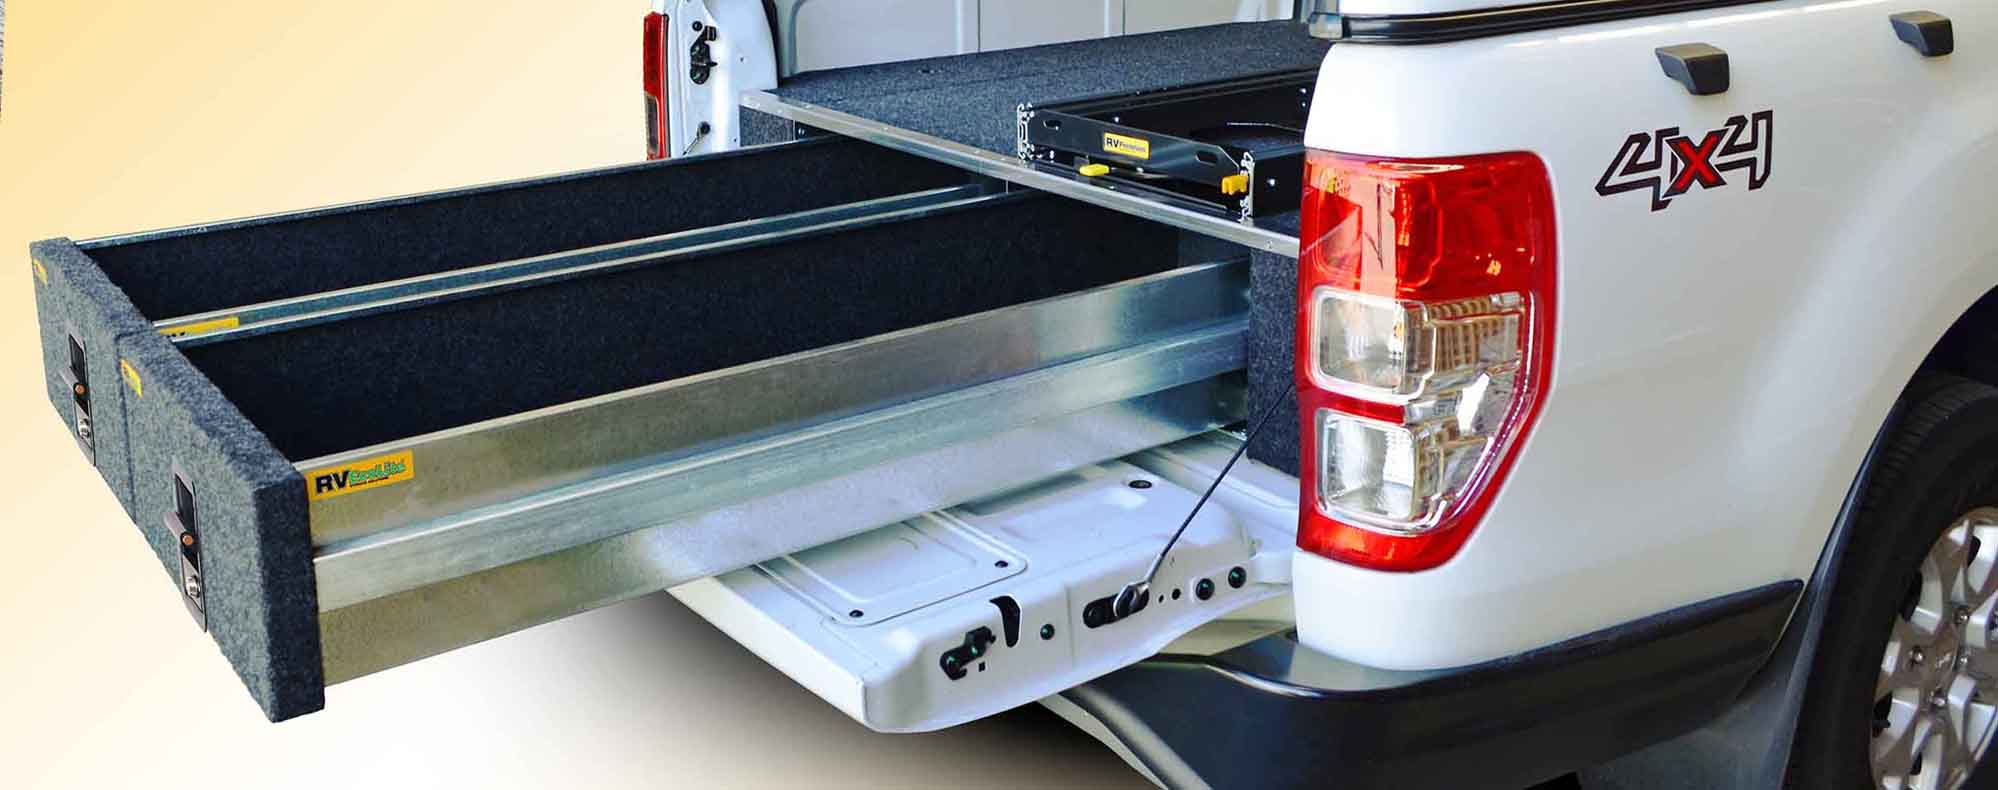 Importance & Use Of 4 wd Drawer System While Travelling To The Next Destination